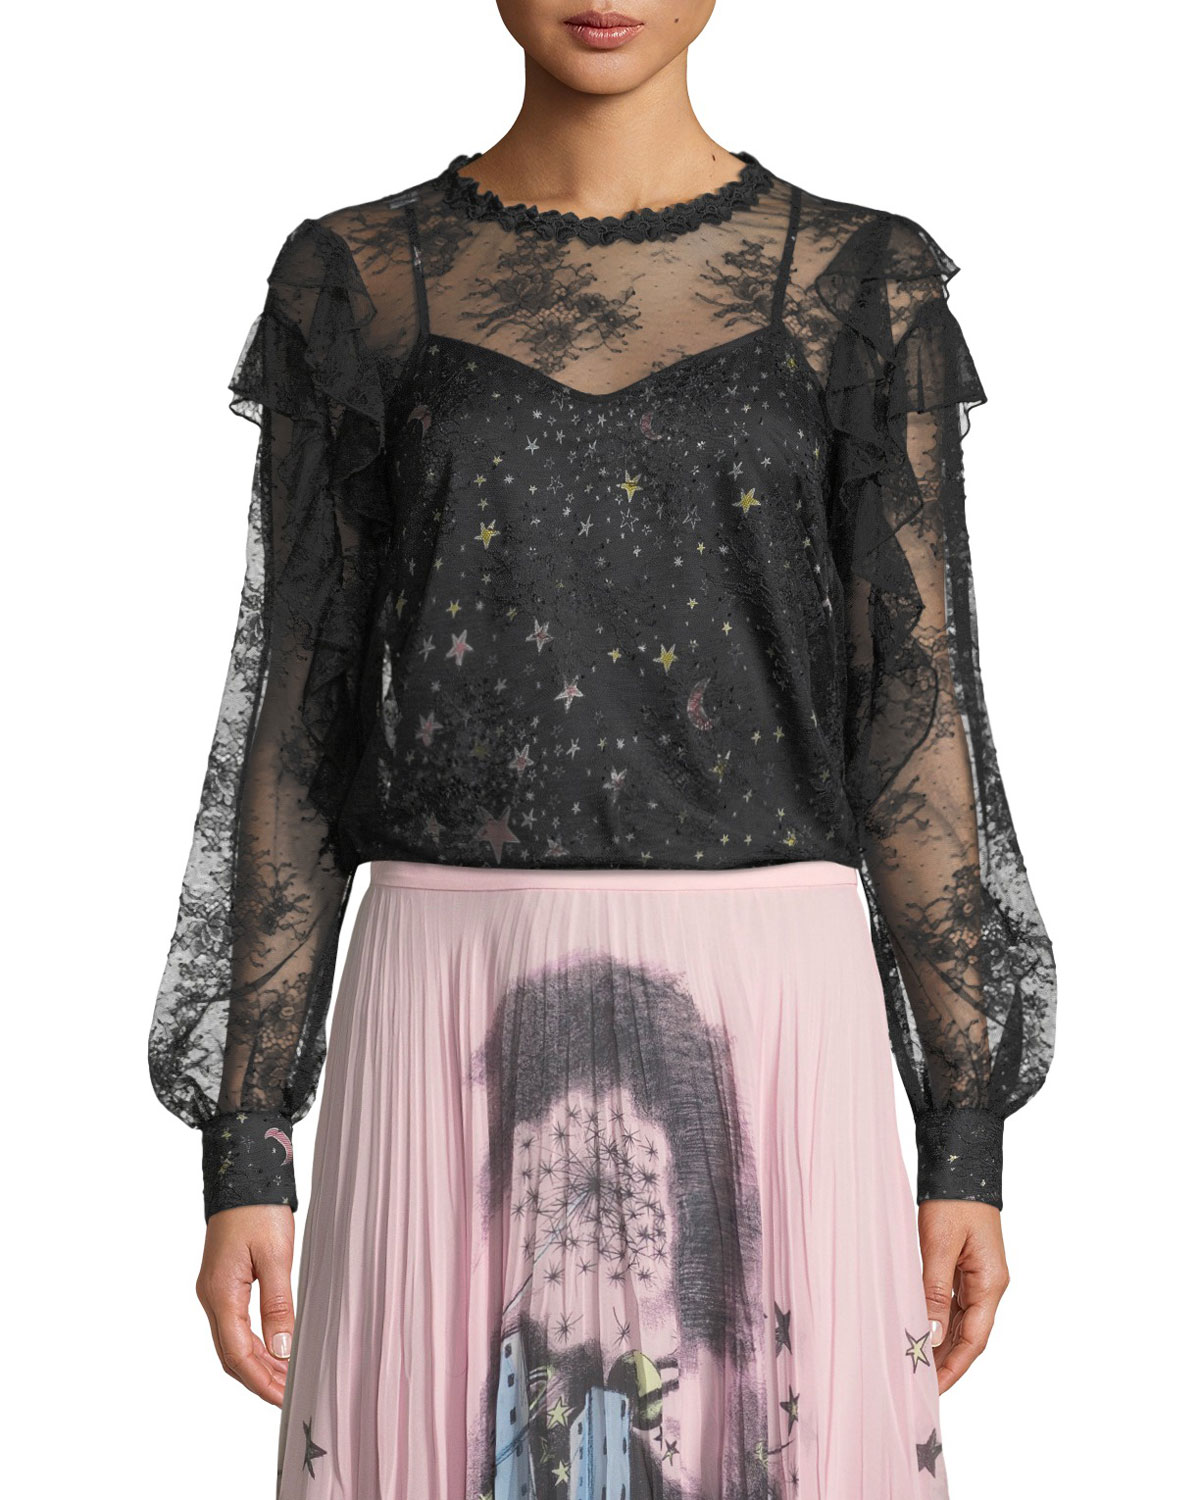 BOUTIQUE MOSCHINO Lace Blouse With Printed Camisole in Black